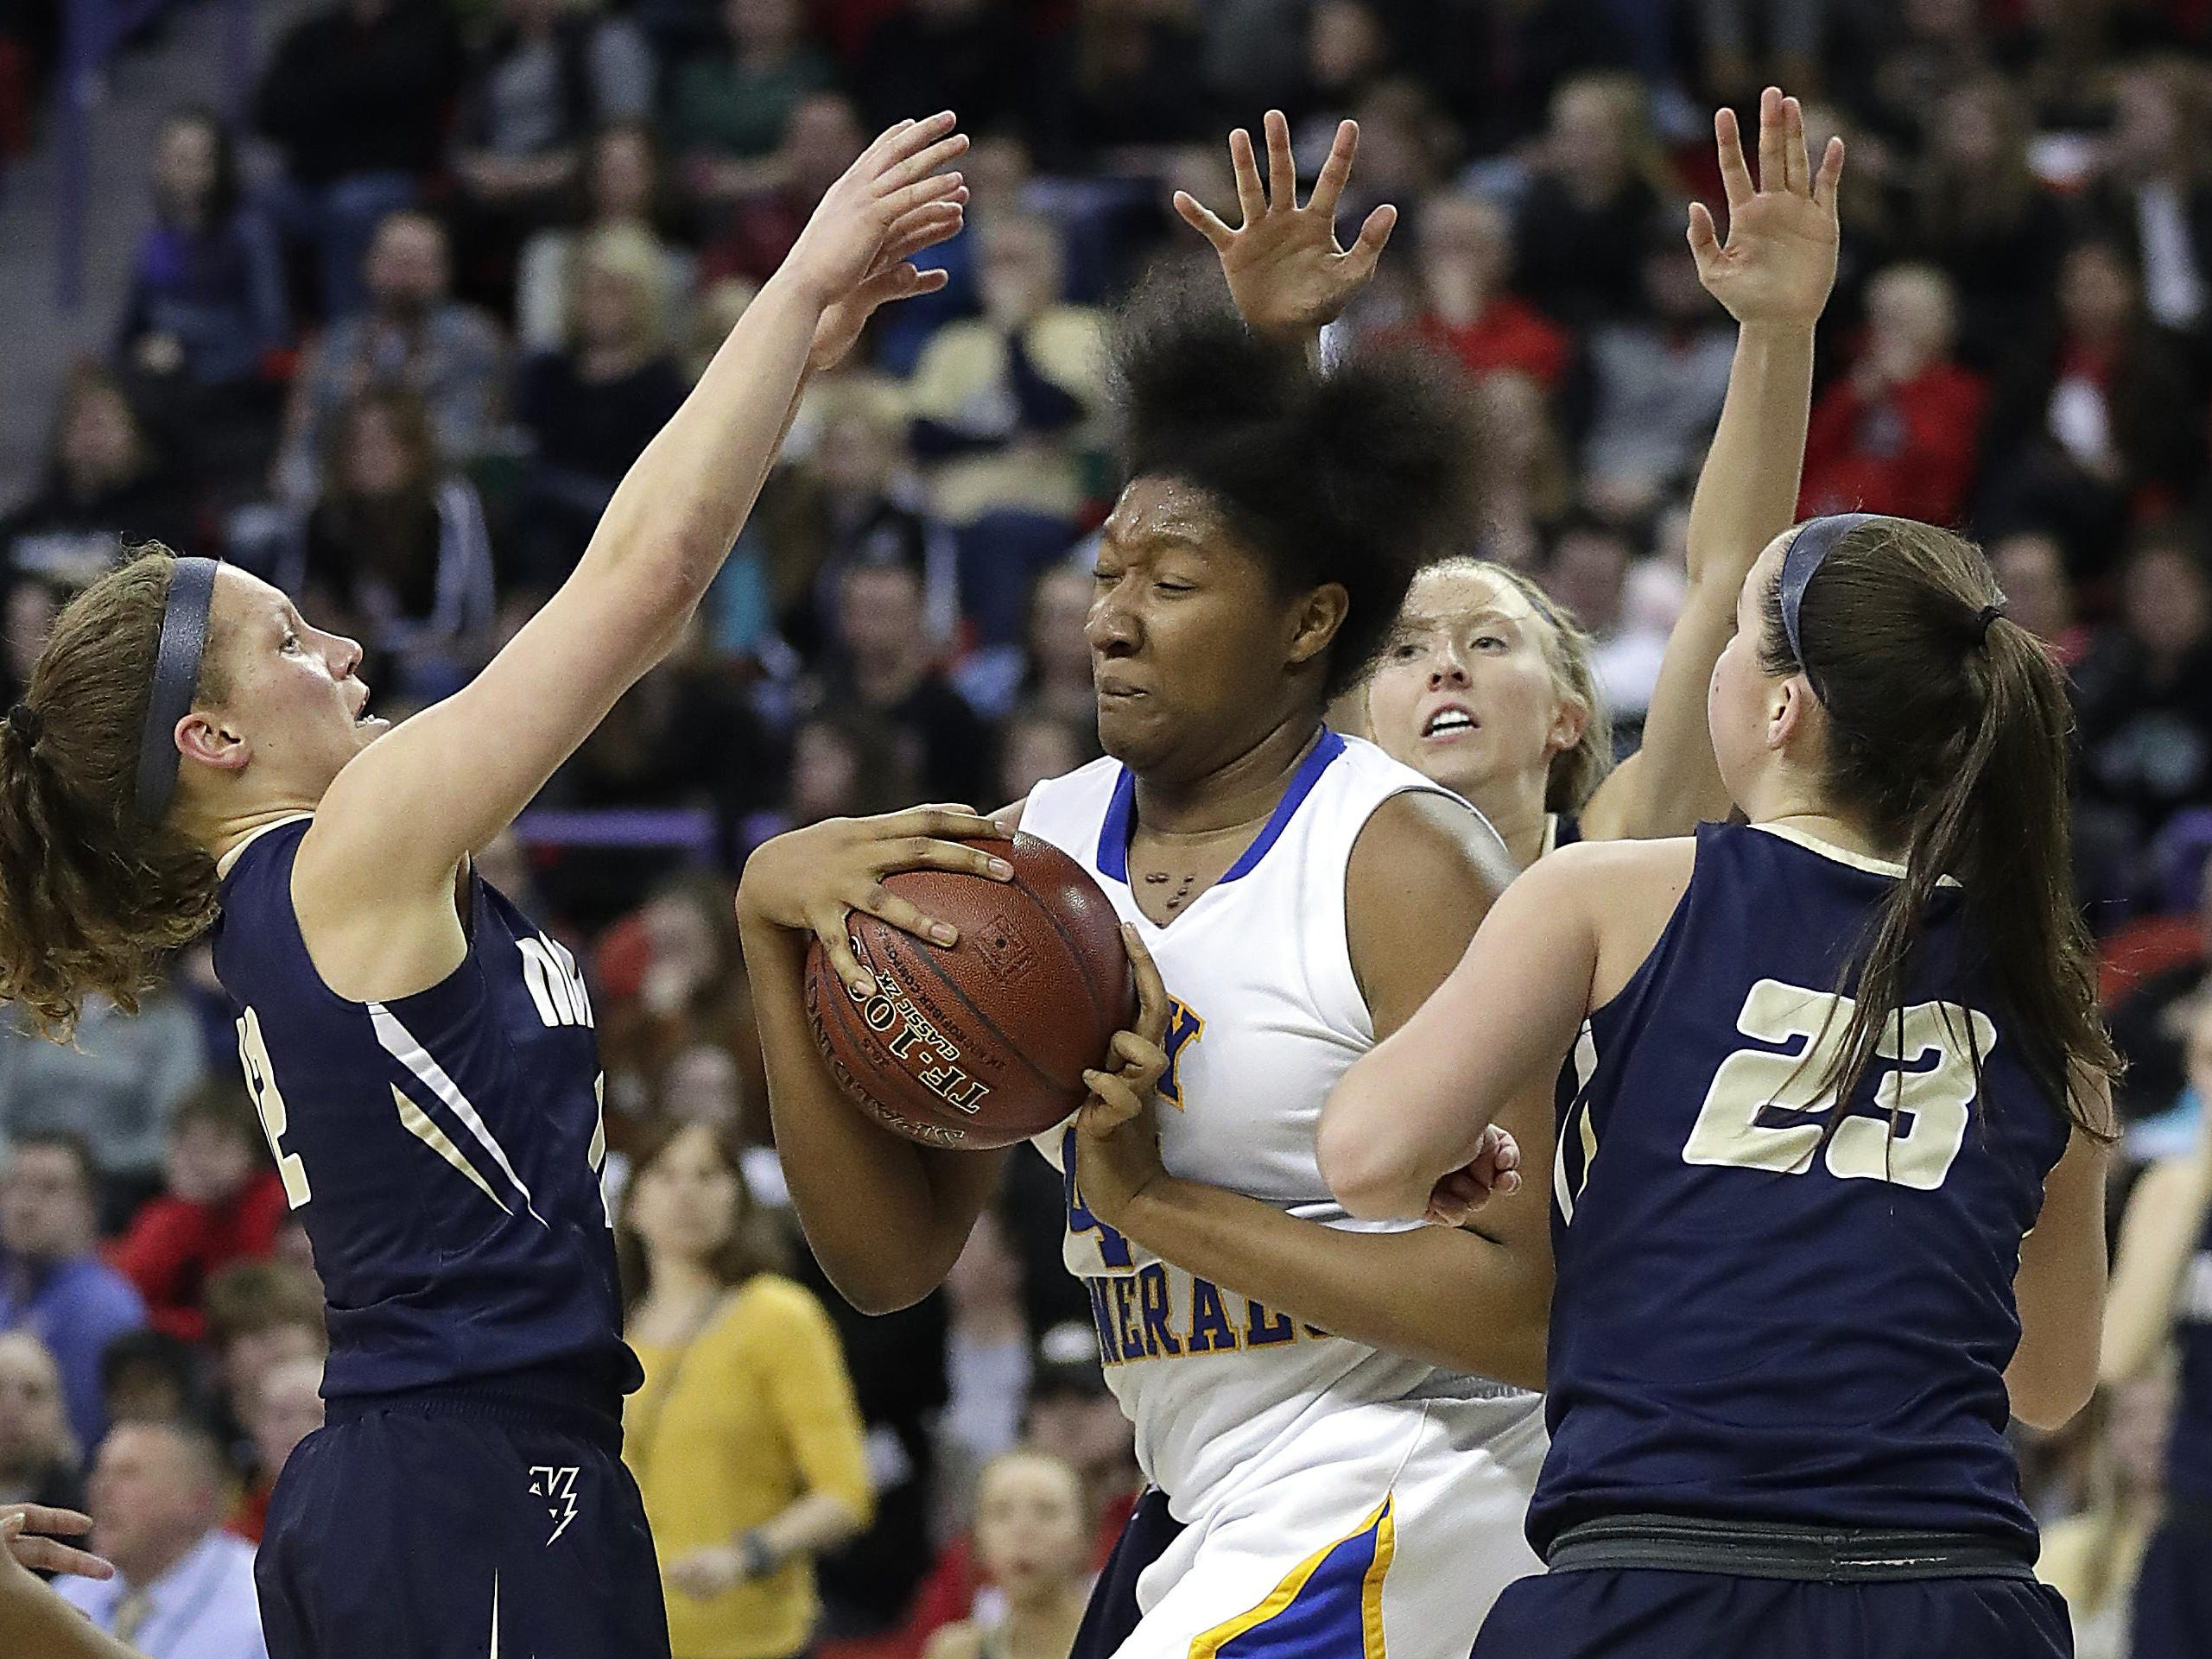 Appleton North's Callie Pohlman, Paige Schabo and Kalen Klitzke surround Milwaukee King center Sydnee Roby under the basket in the WIAA Girls State Basketball Division 1 semifinal at the Resch Center in Ashwaubenon Friday.